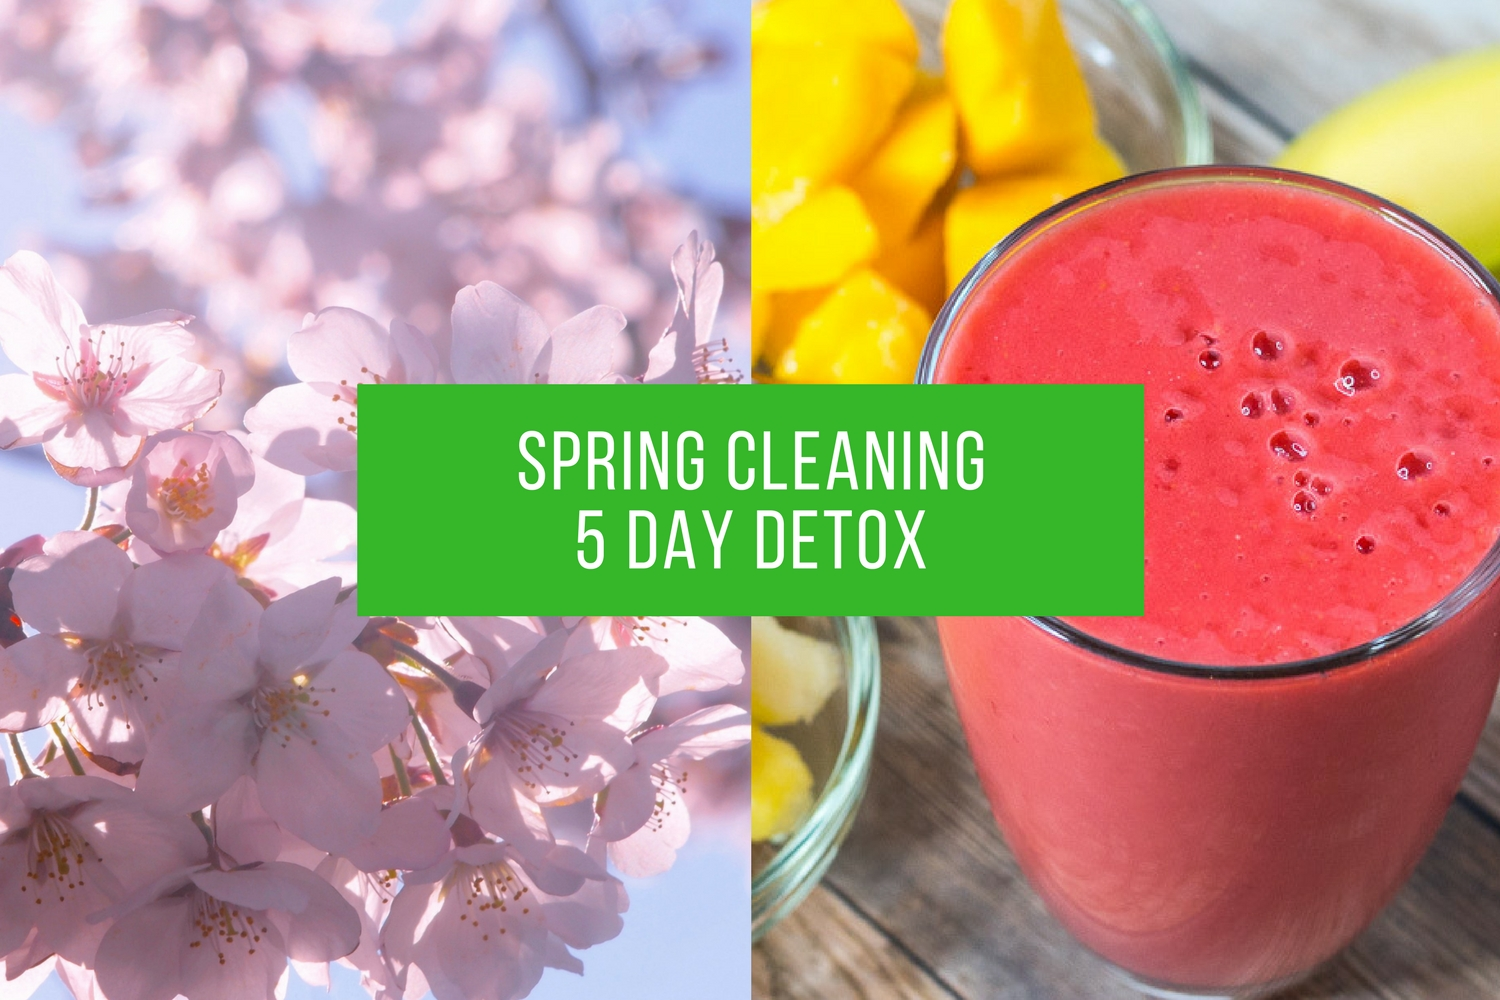 Spring Cleaning 5 Day Detox